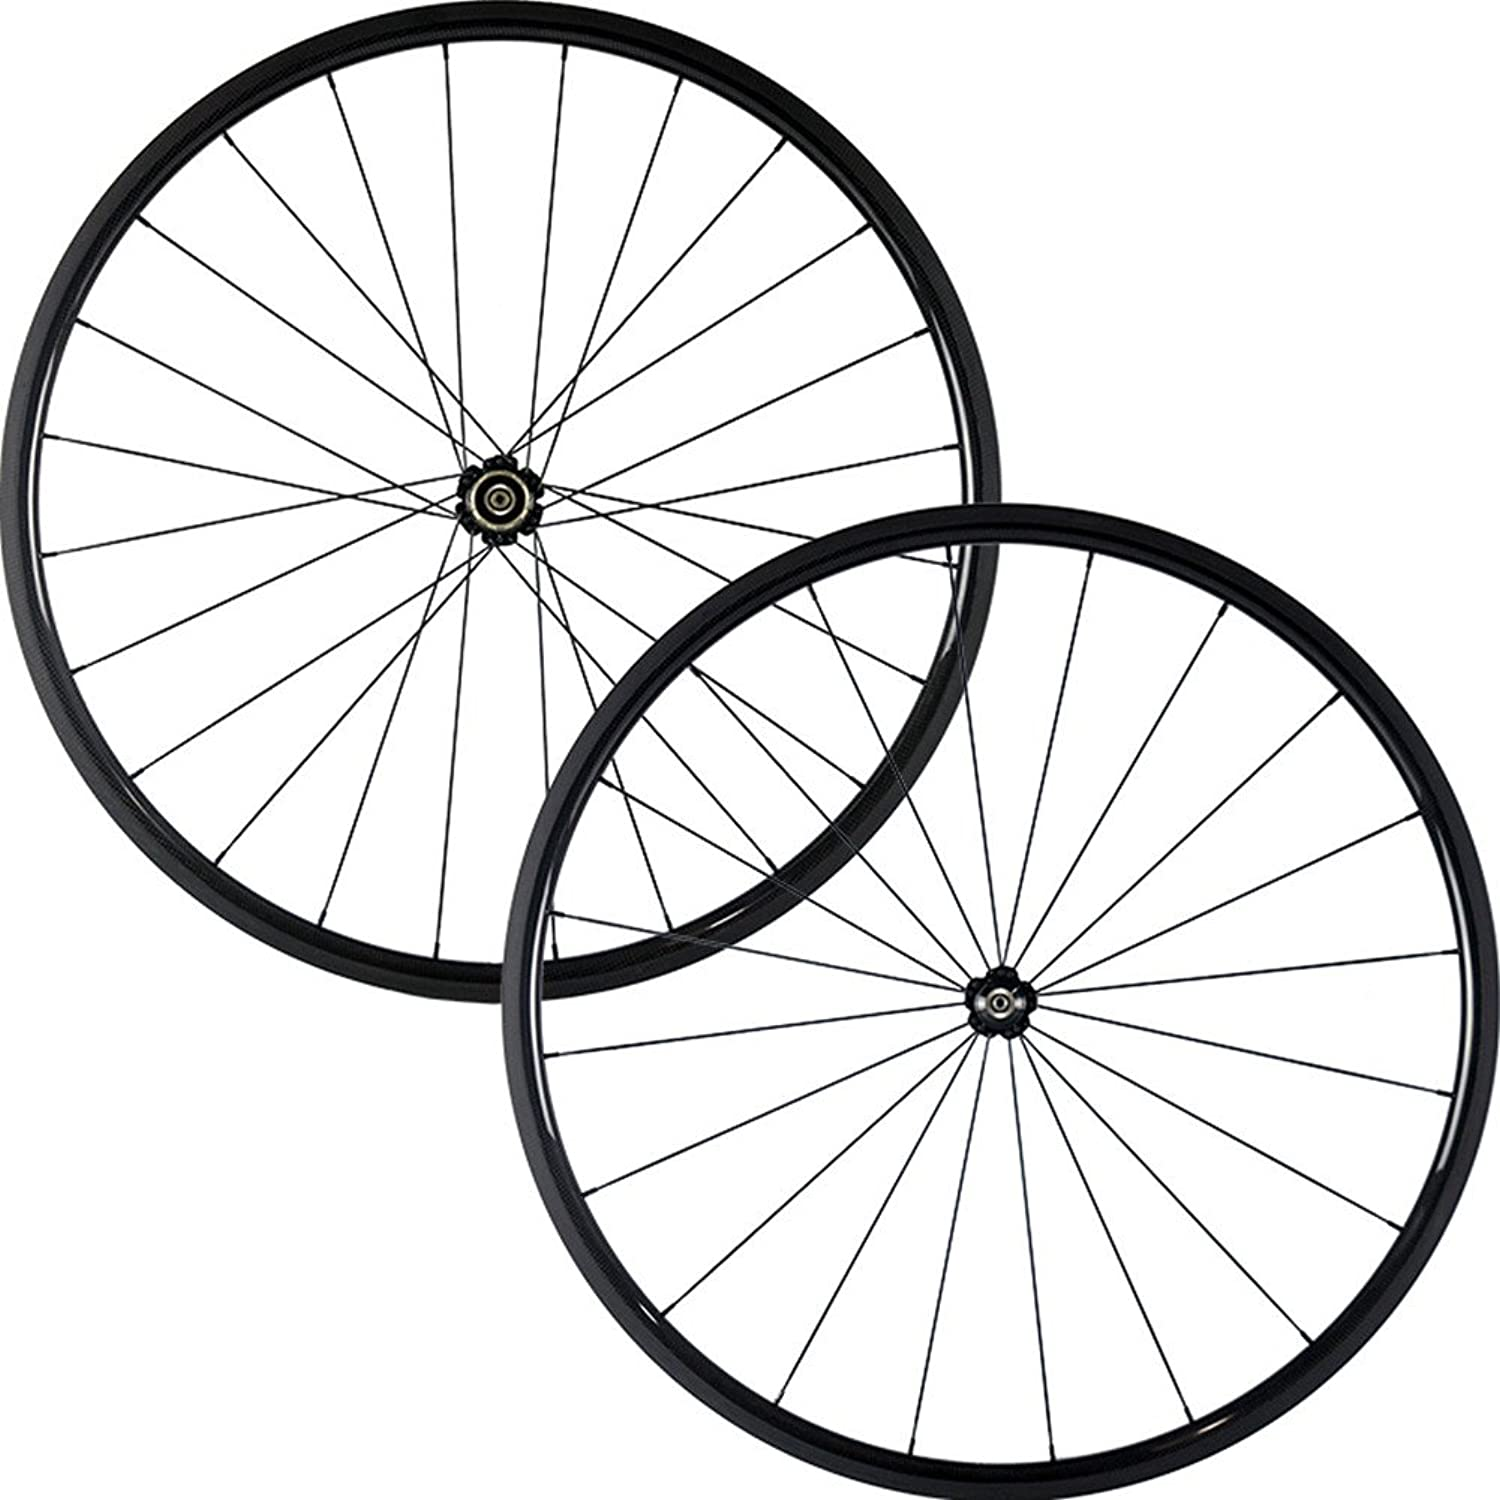 Hulksports 700C 24mm Clincher Carbon Road Bicycle Wheels Ultra Light 23mm Width Wheelset Optional Glossy or Matte